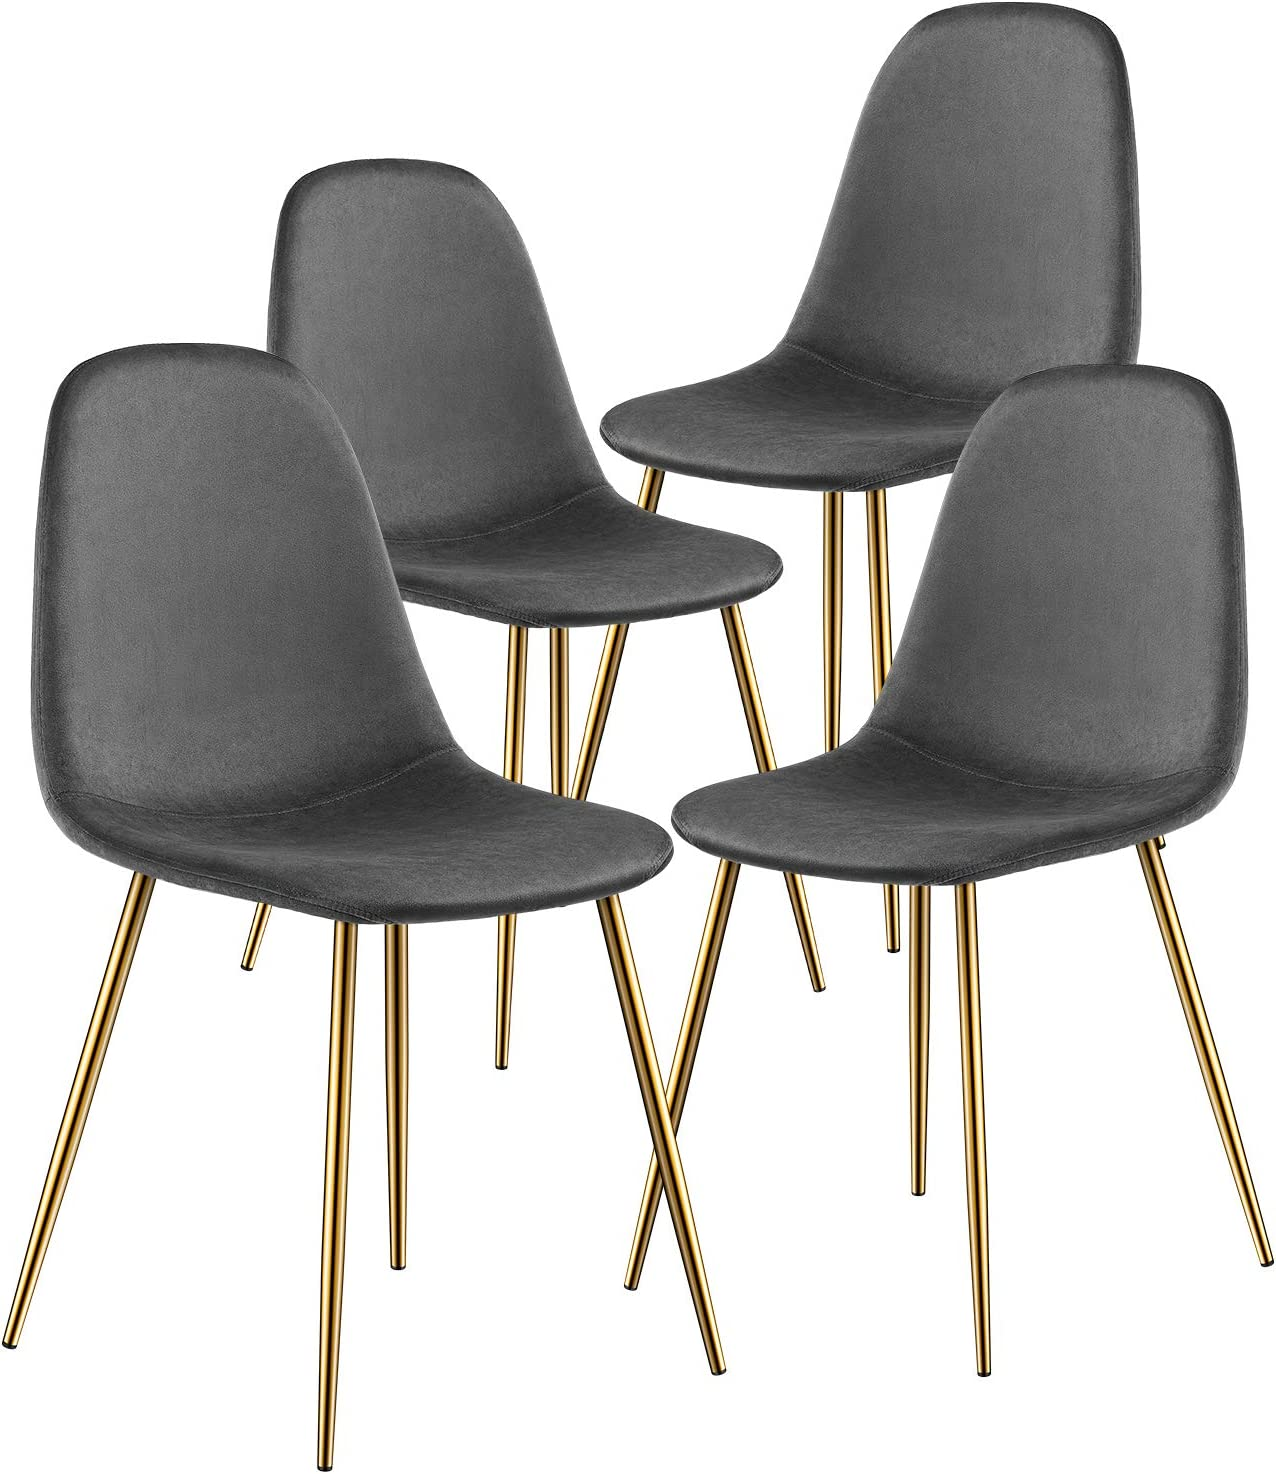 Kealive Dining Chair for Kitchen Dining Room Set of 4 Mid Century Modern Side Chairs with Golden Metal Legs, Velvet Fabric and Soft Upholstered Seat, Grey